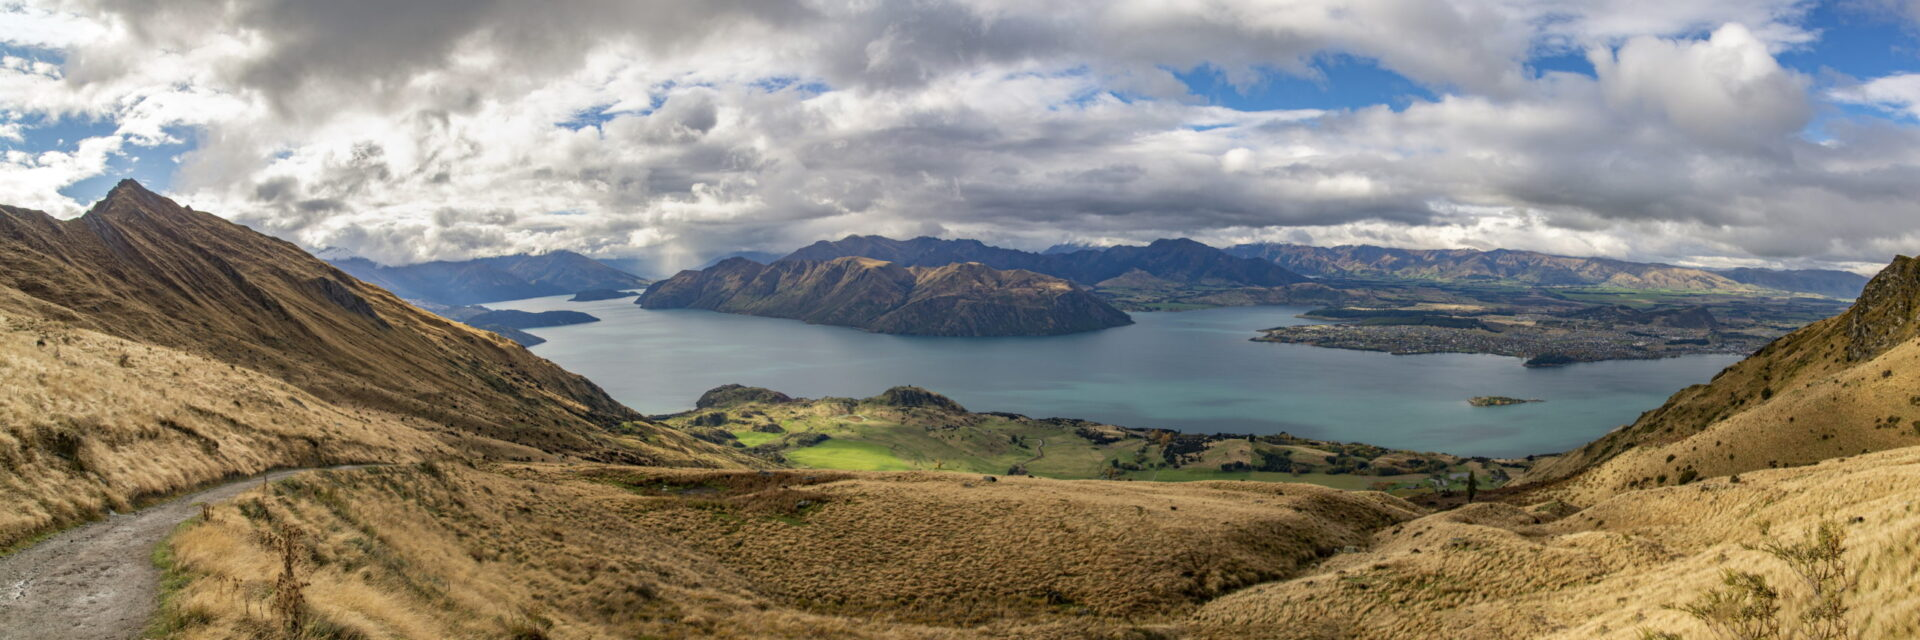 Panorama of Wanaka